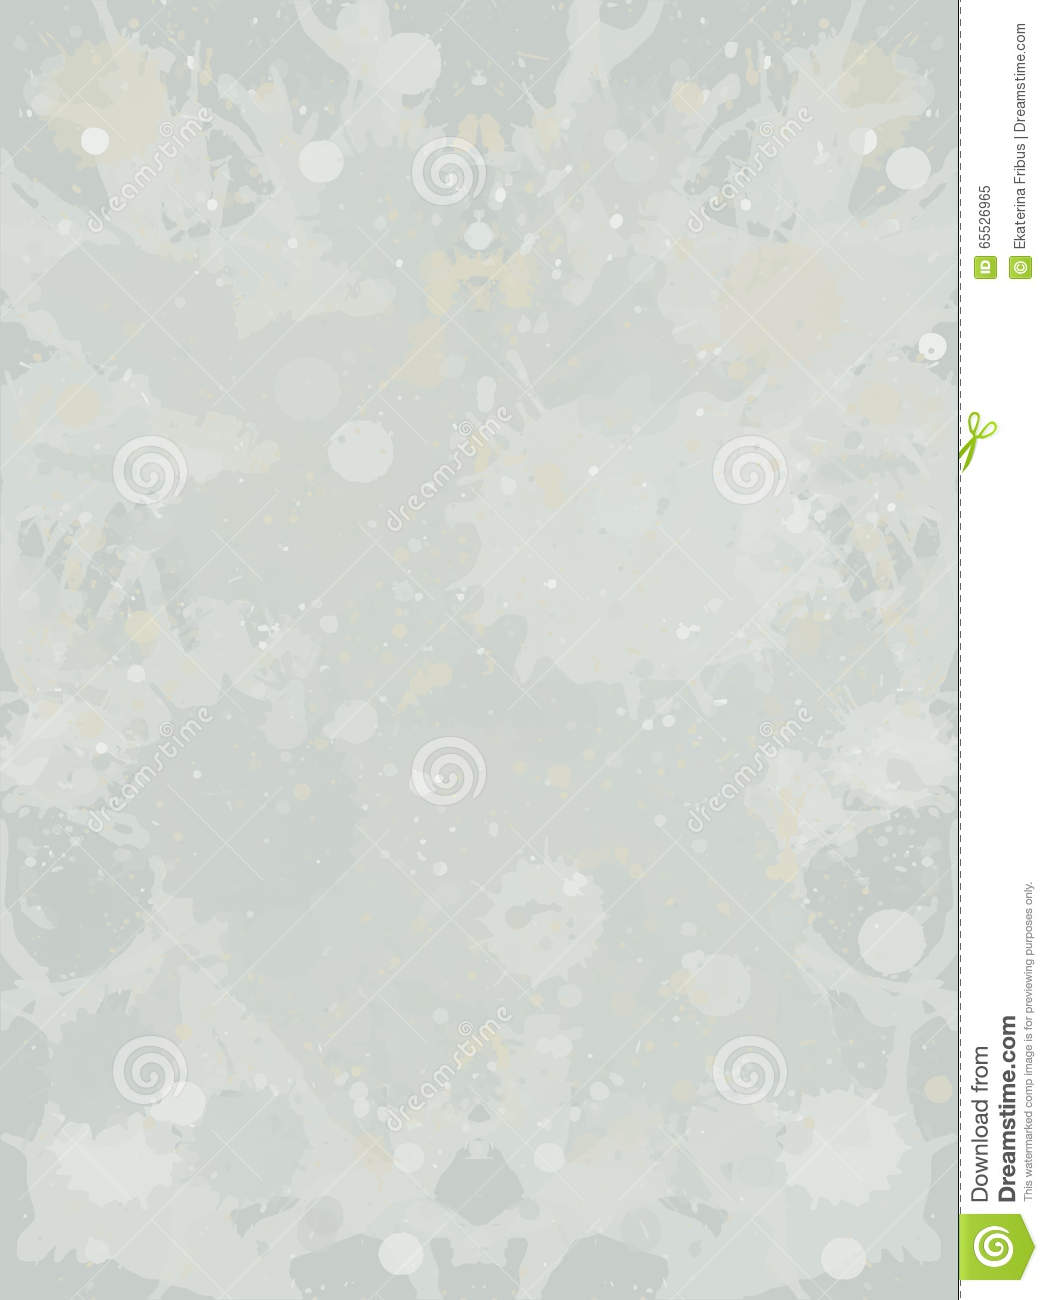 Watercolor paint splashes background stock vector image for Light neutral grey paint